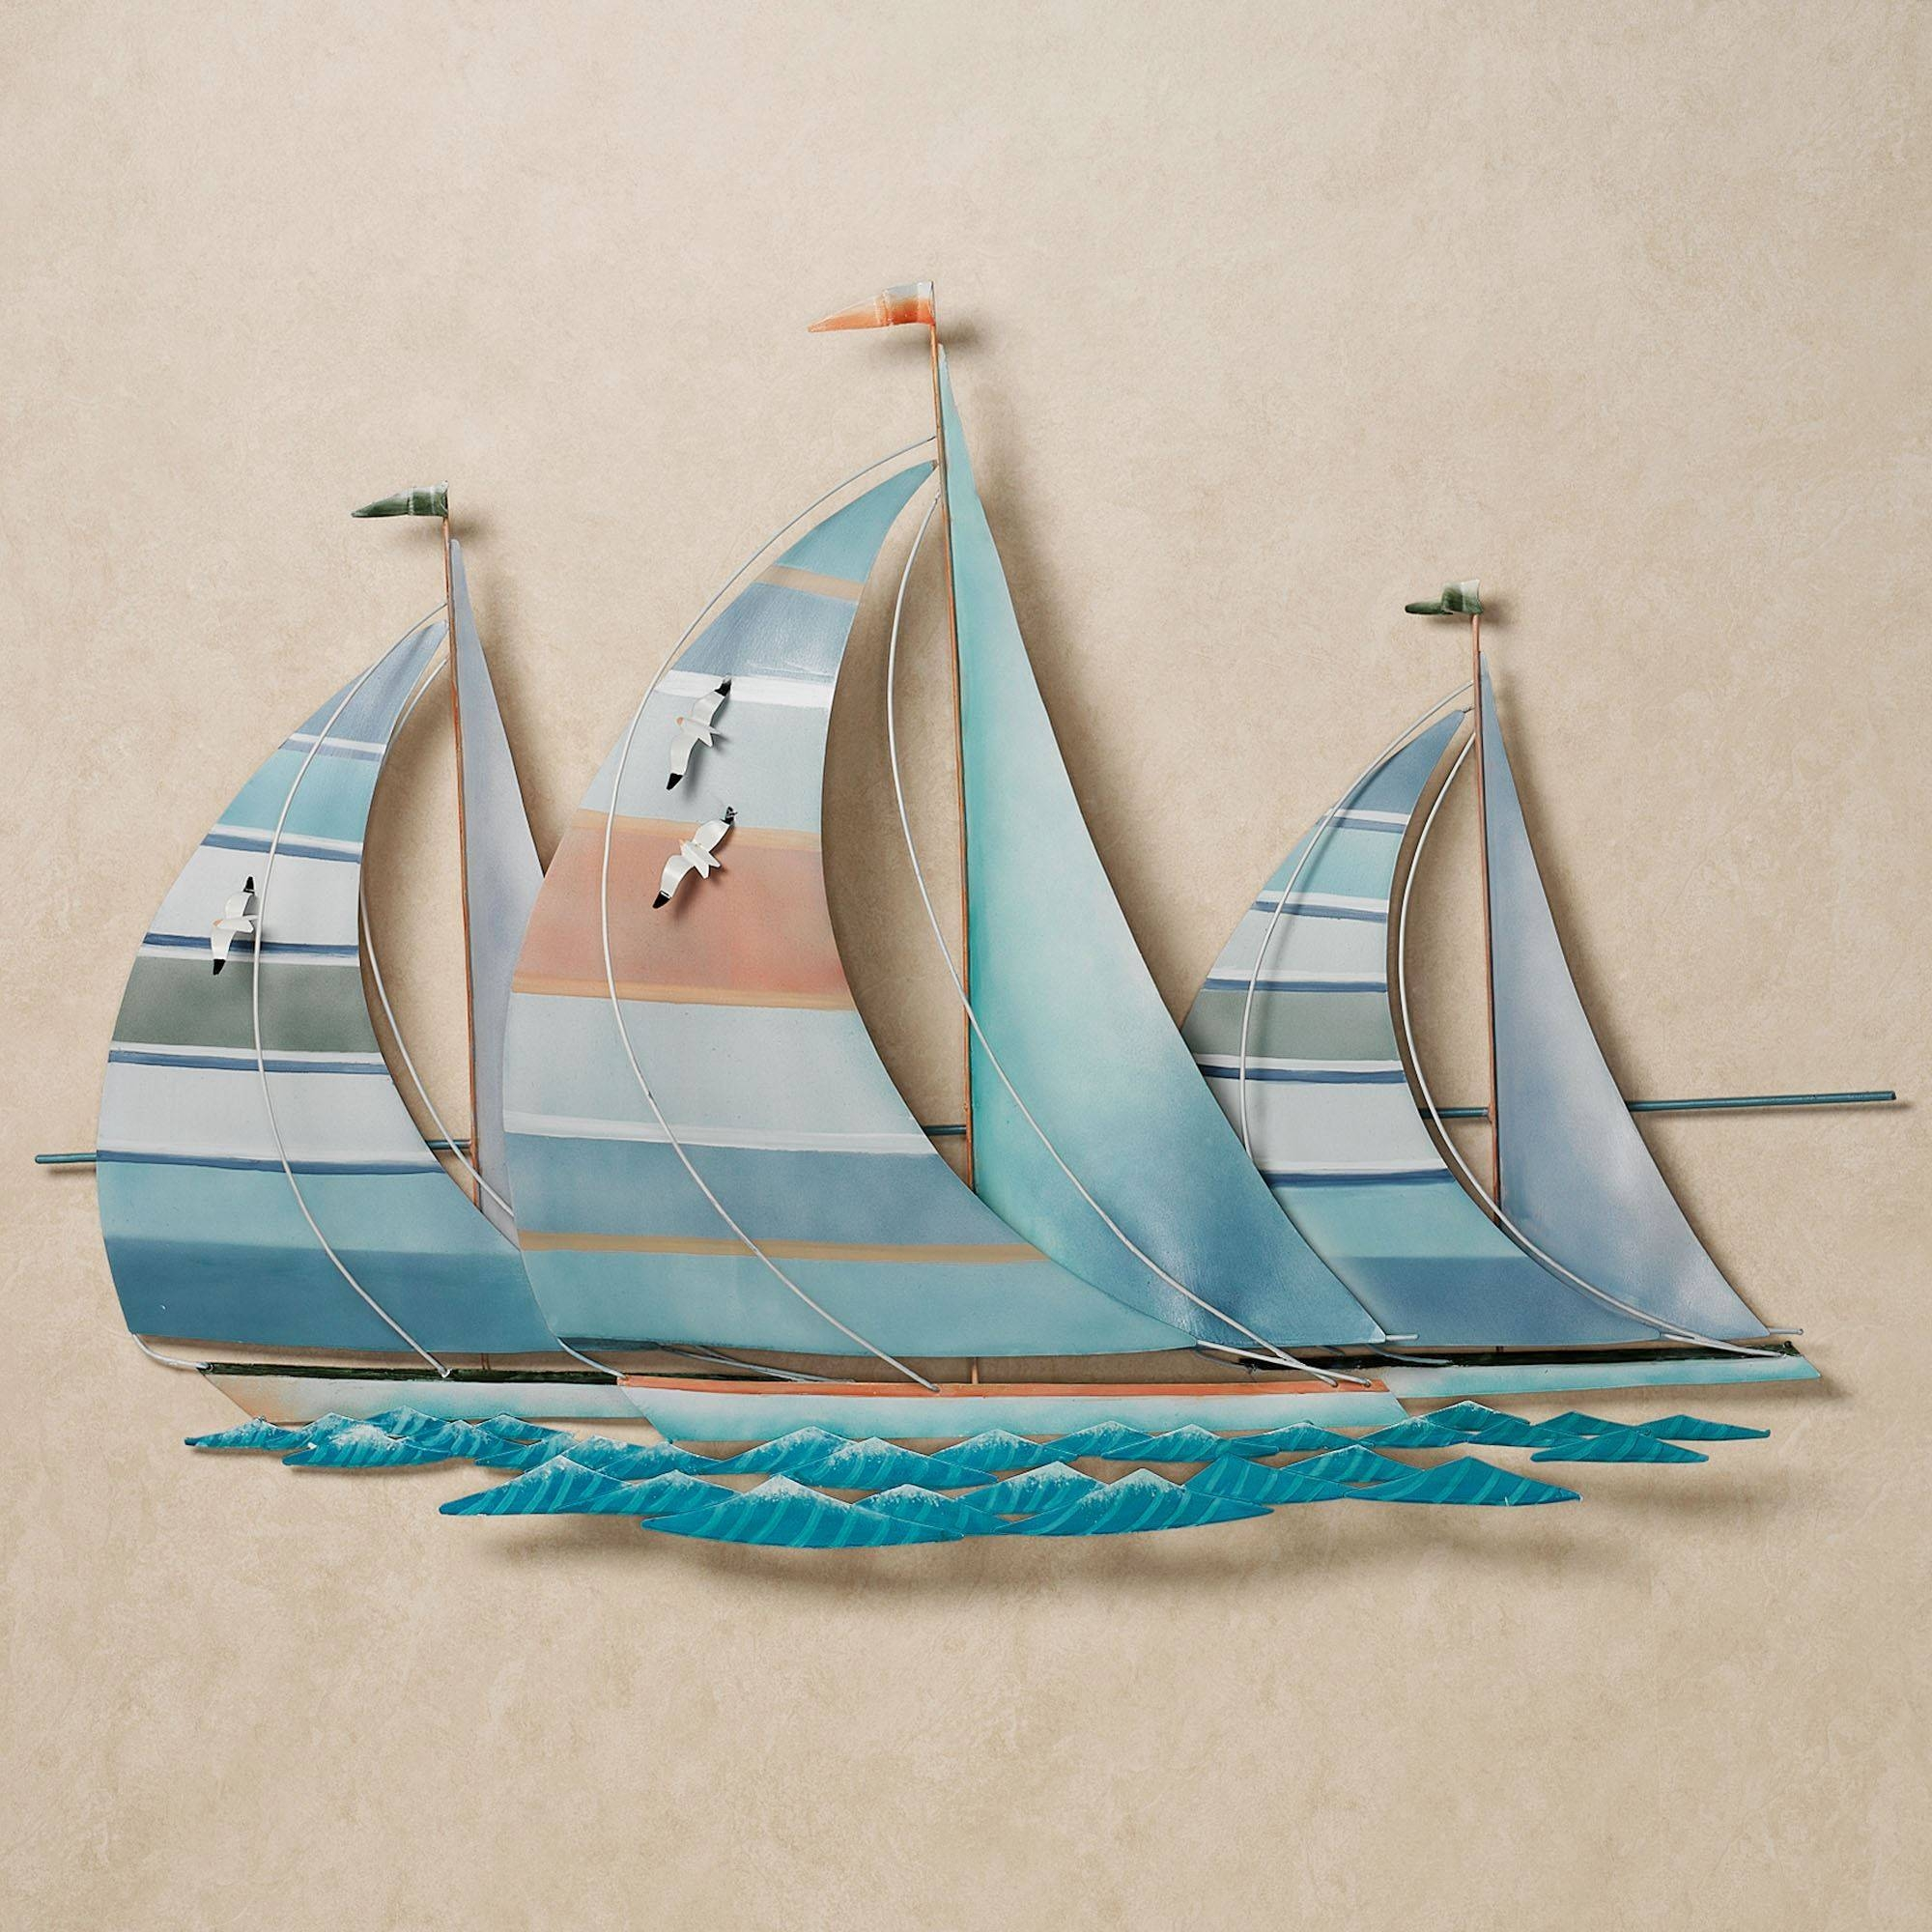 Regatta Finish Line Multi Cool Metal Sailboat Wall Sculpture Inside Current Metal Coastal Wall Art (View 6 of 20)